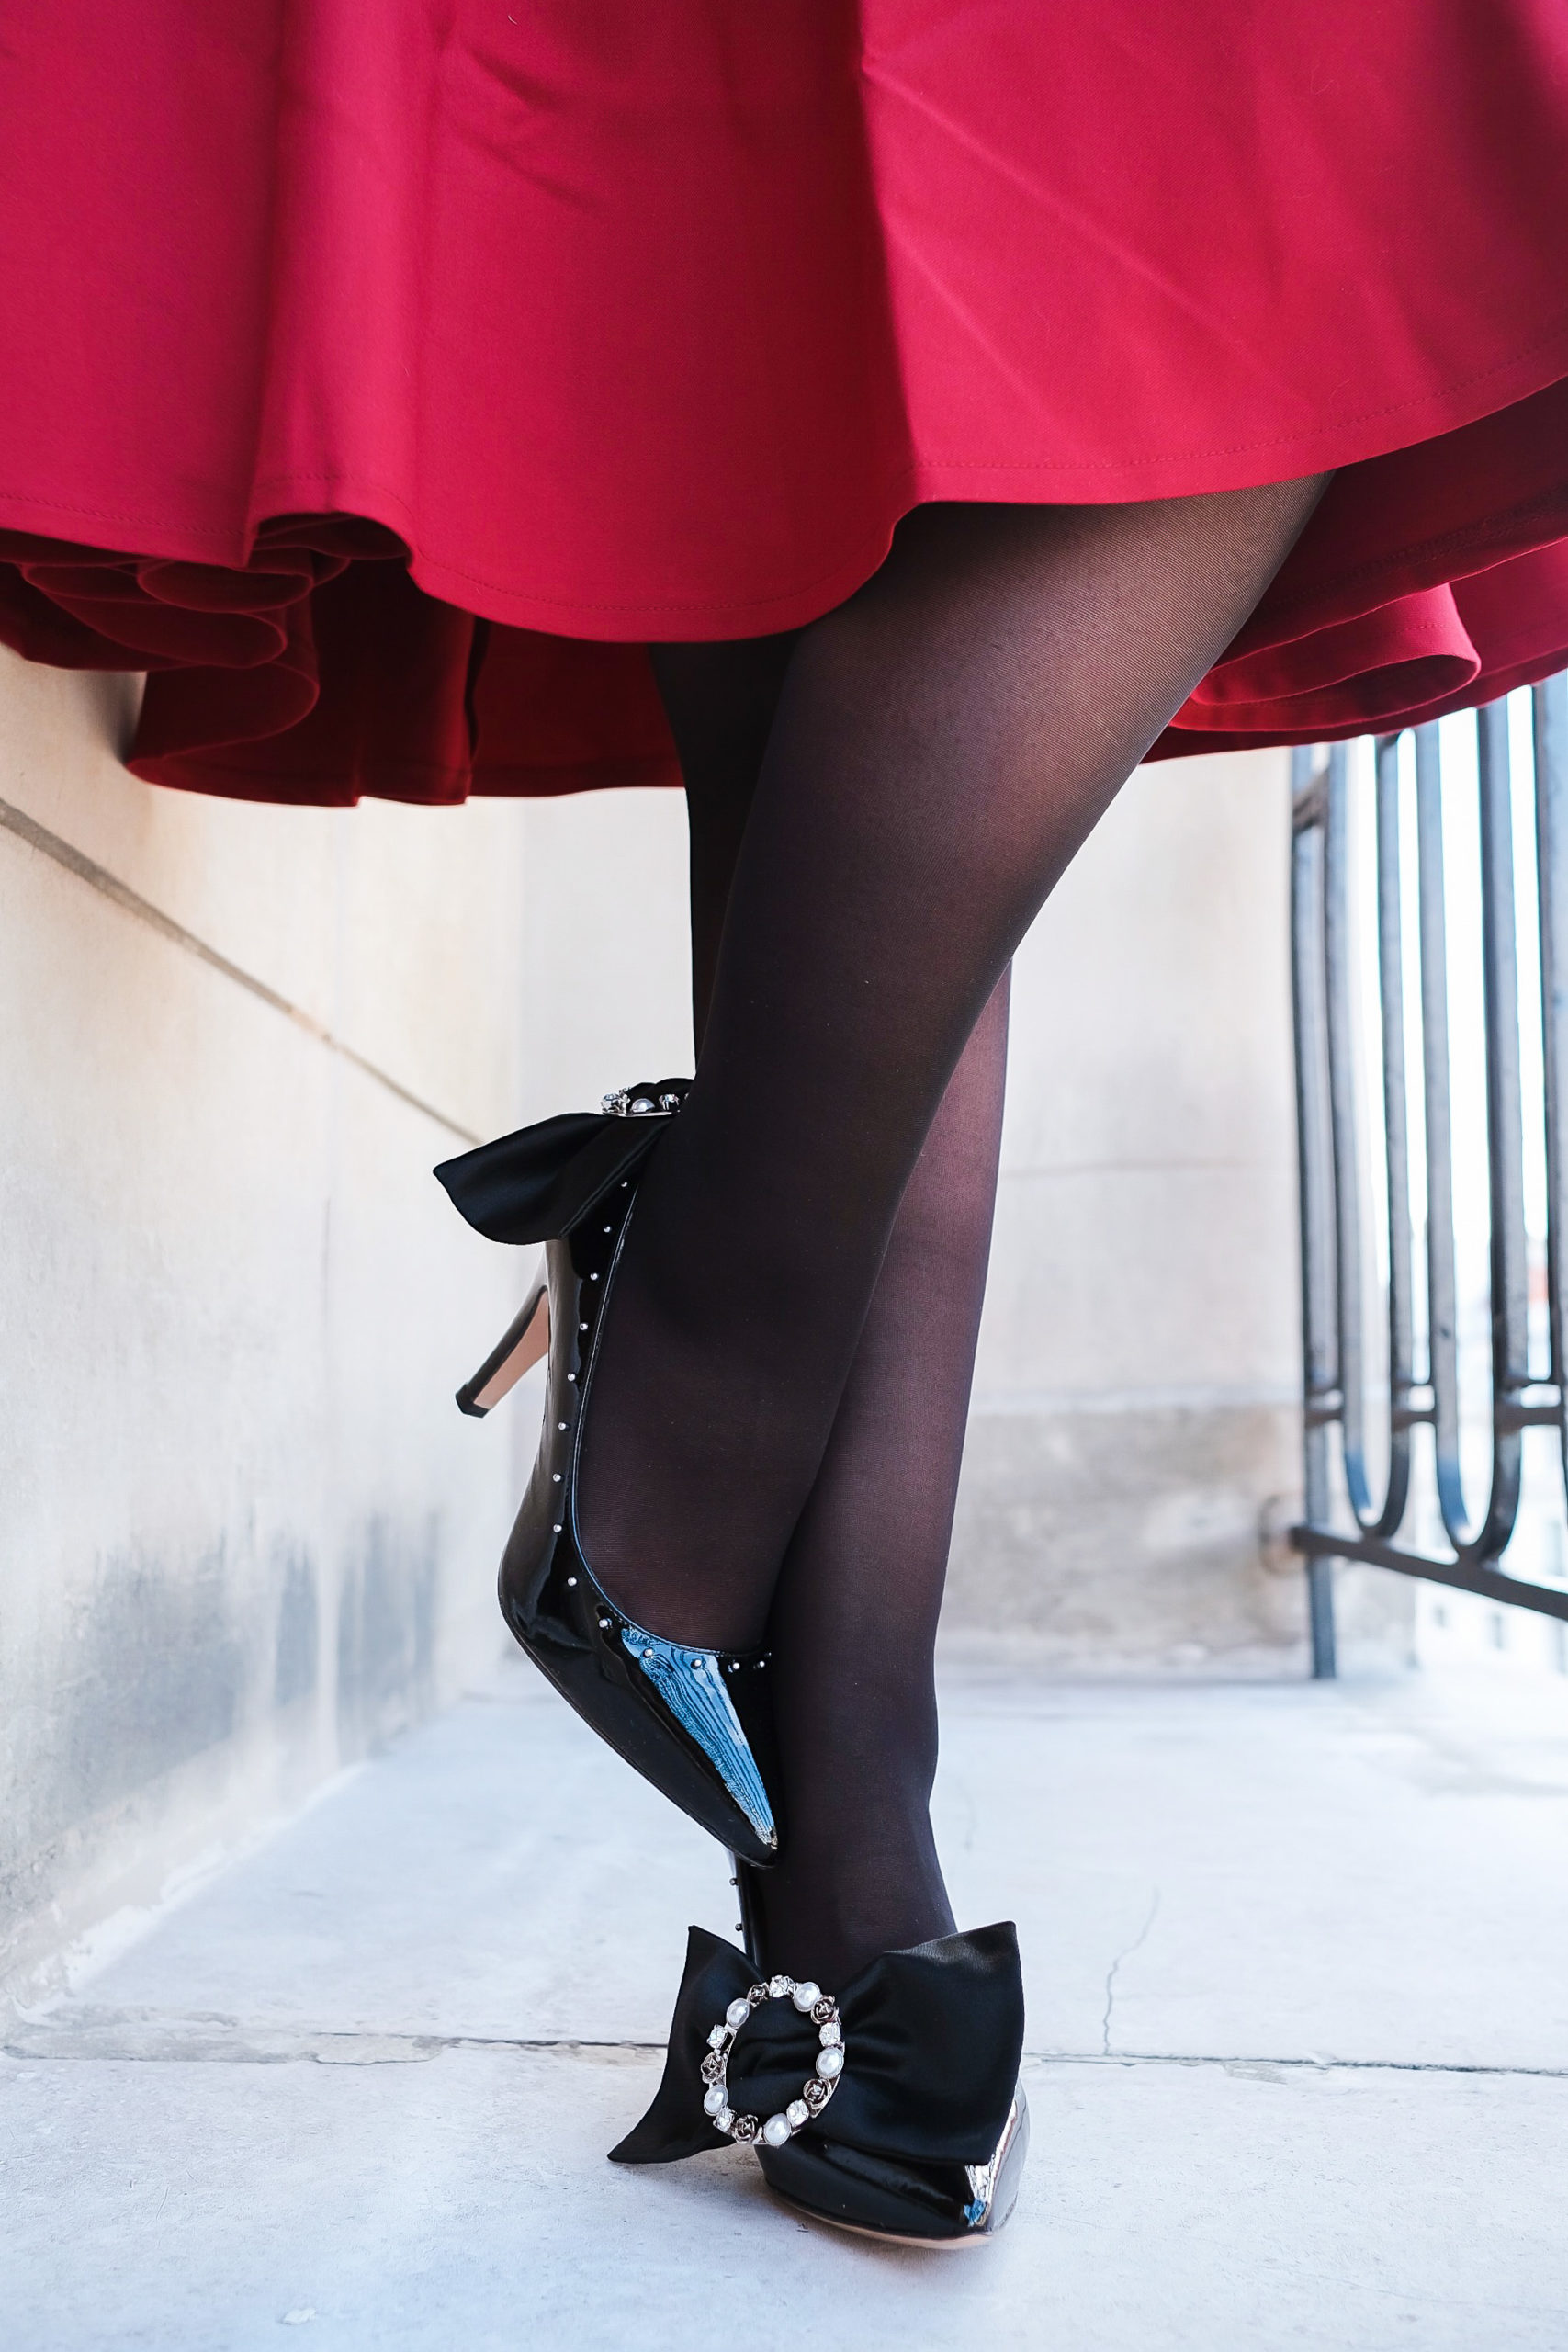 malefic shoes made in france escarpins